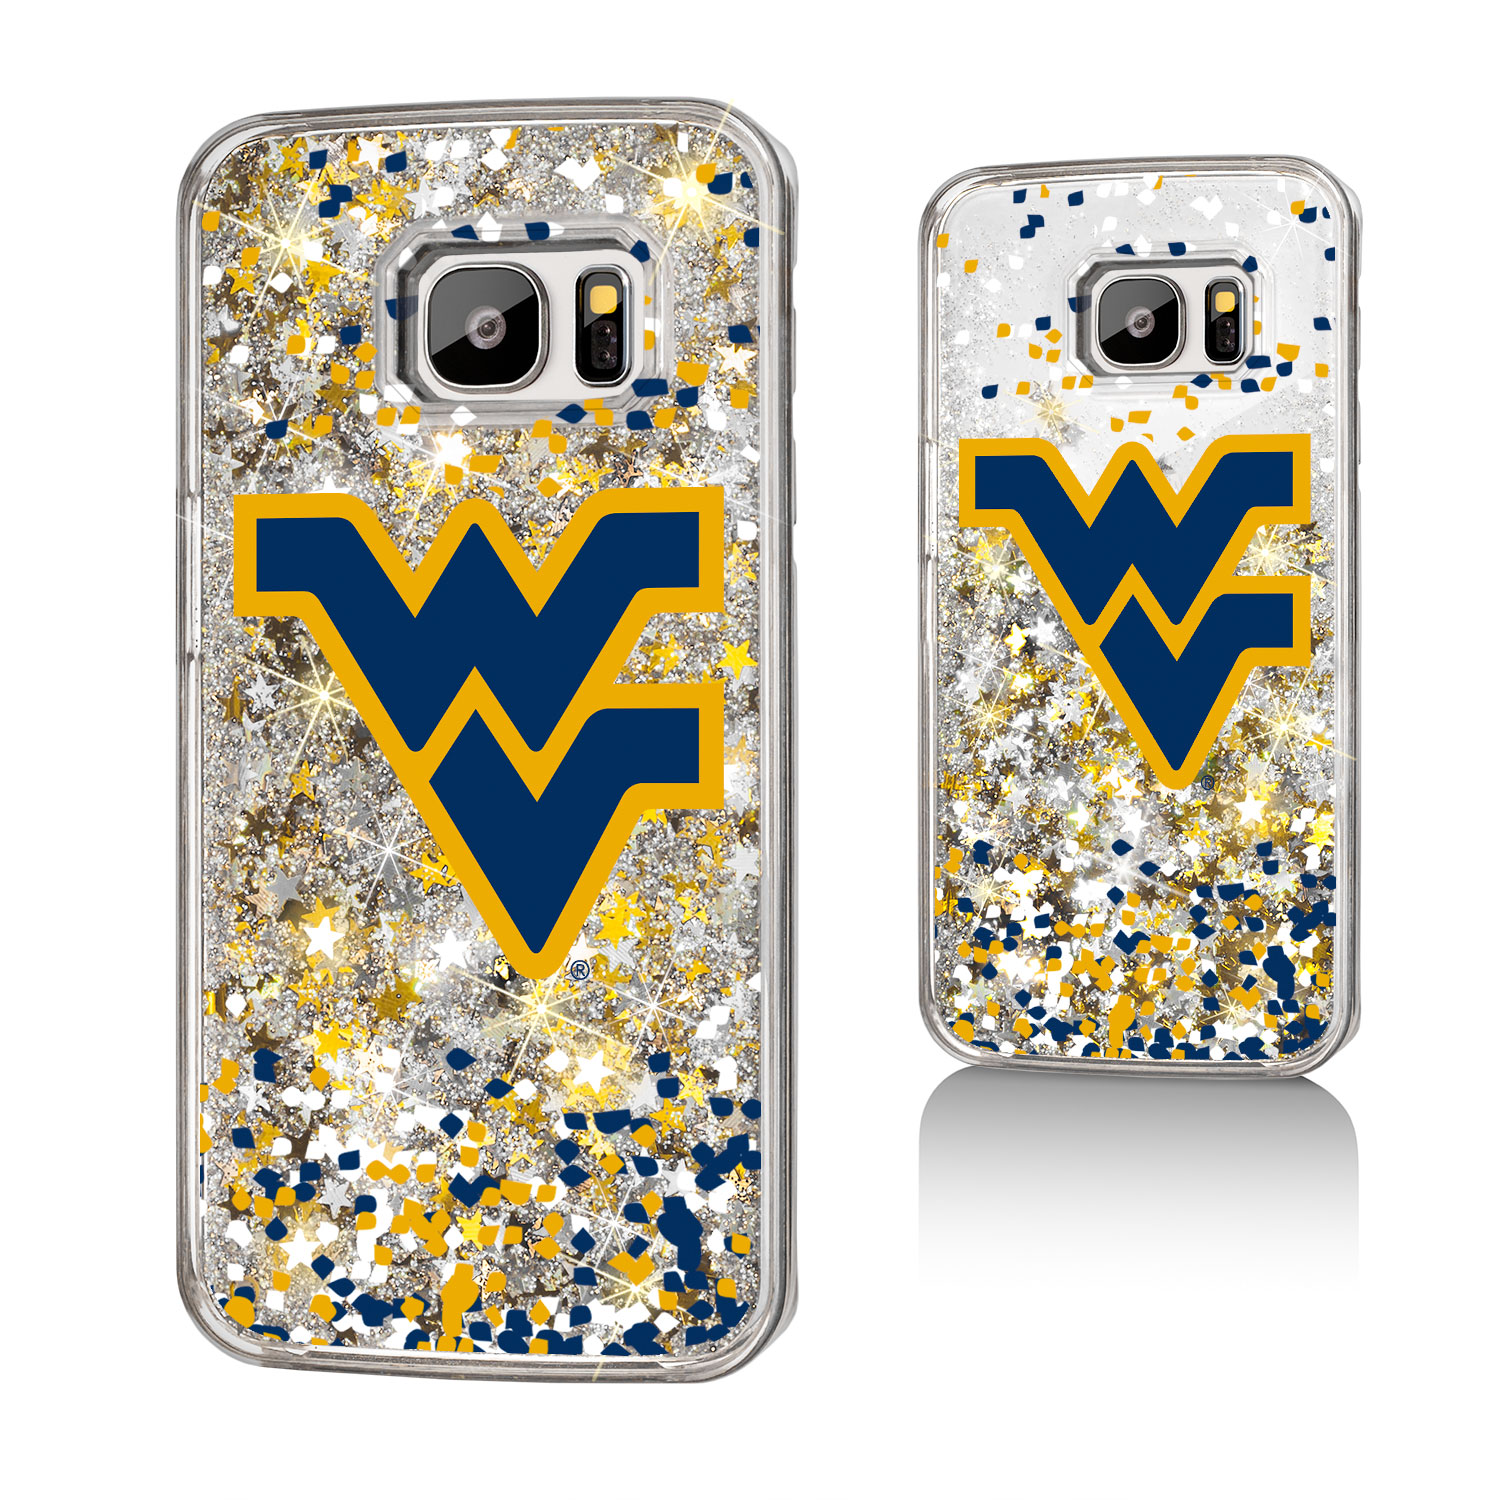 WVU West Virginia Mountaineers Confetti Glitter Case for Galaxy S7